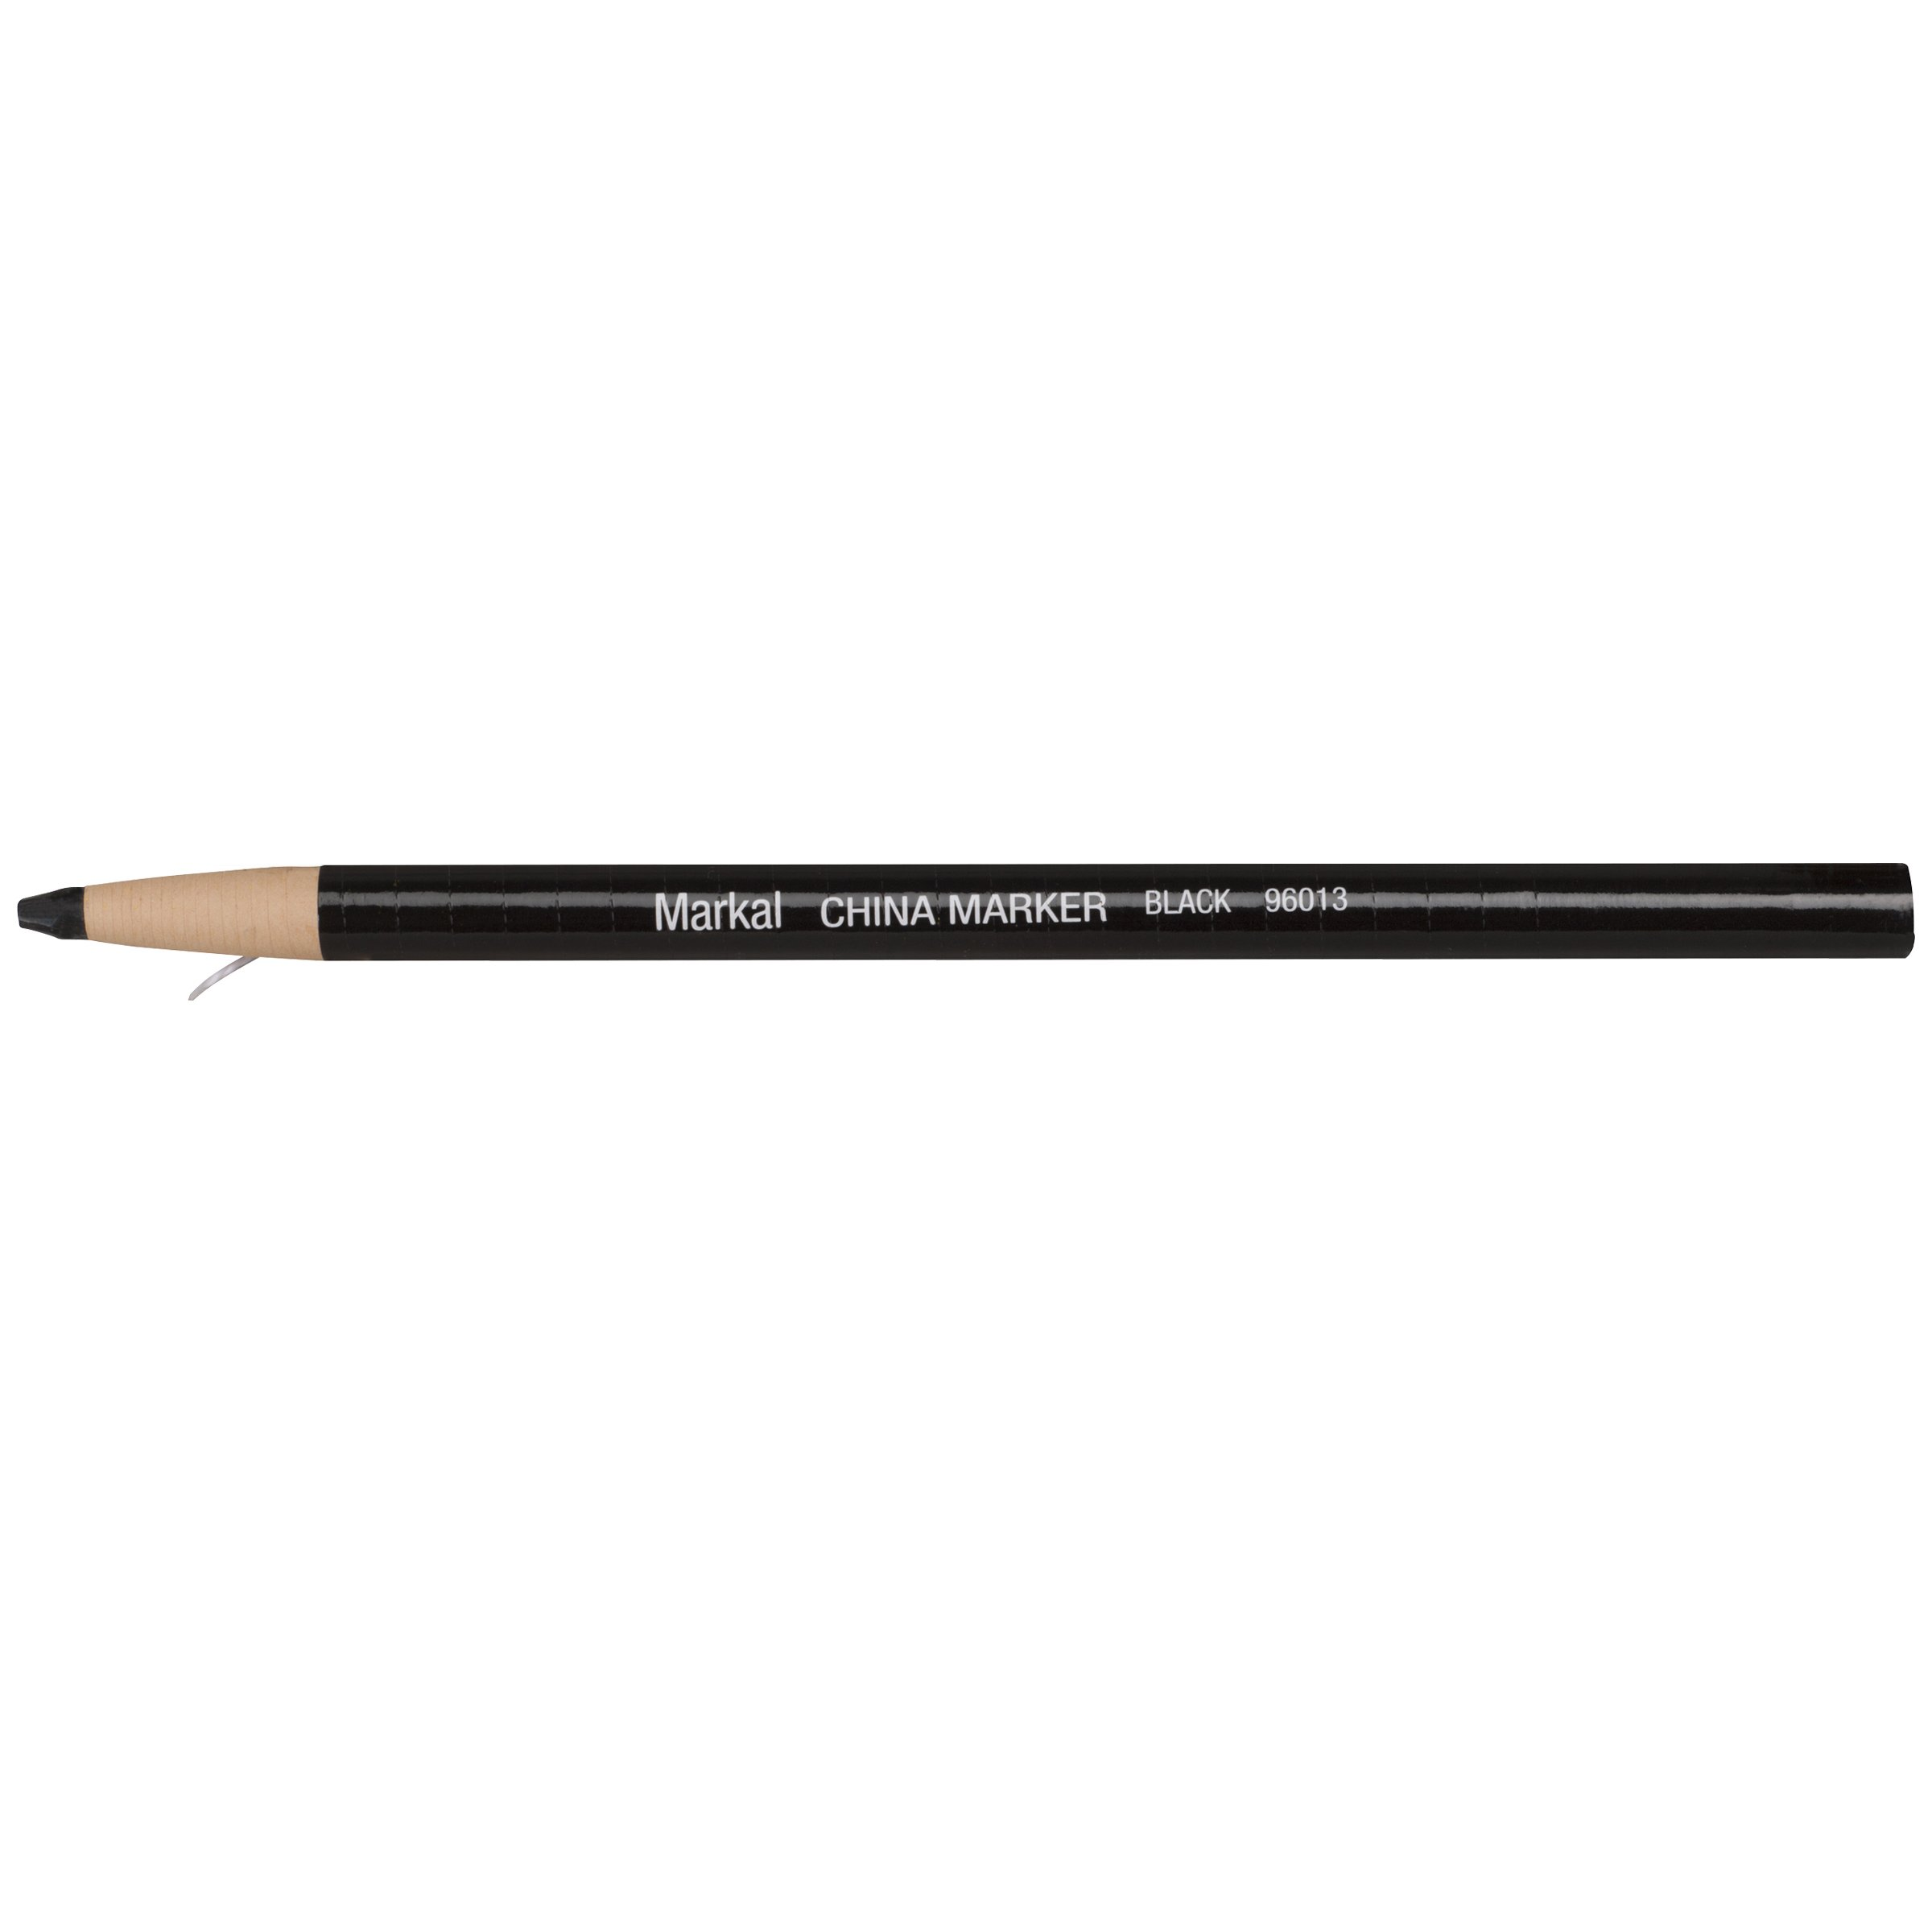 Markal Paper Wrapped China Marker, Black (Pack of 12) by Markal (Image #1)